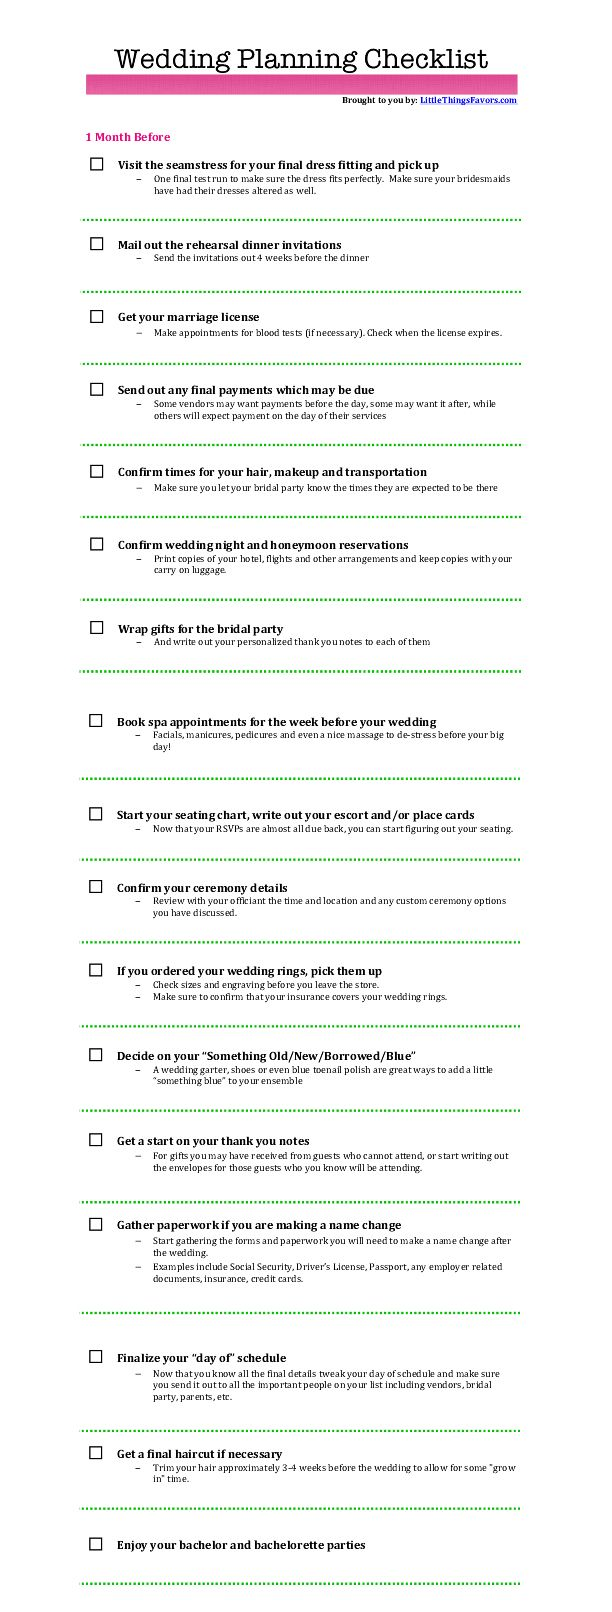 free printable #wedding #planning checklist 1 month before the wedding. click through to the website for a PDF printable copy